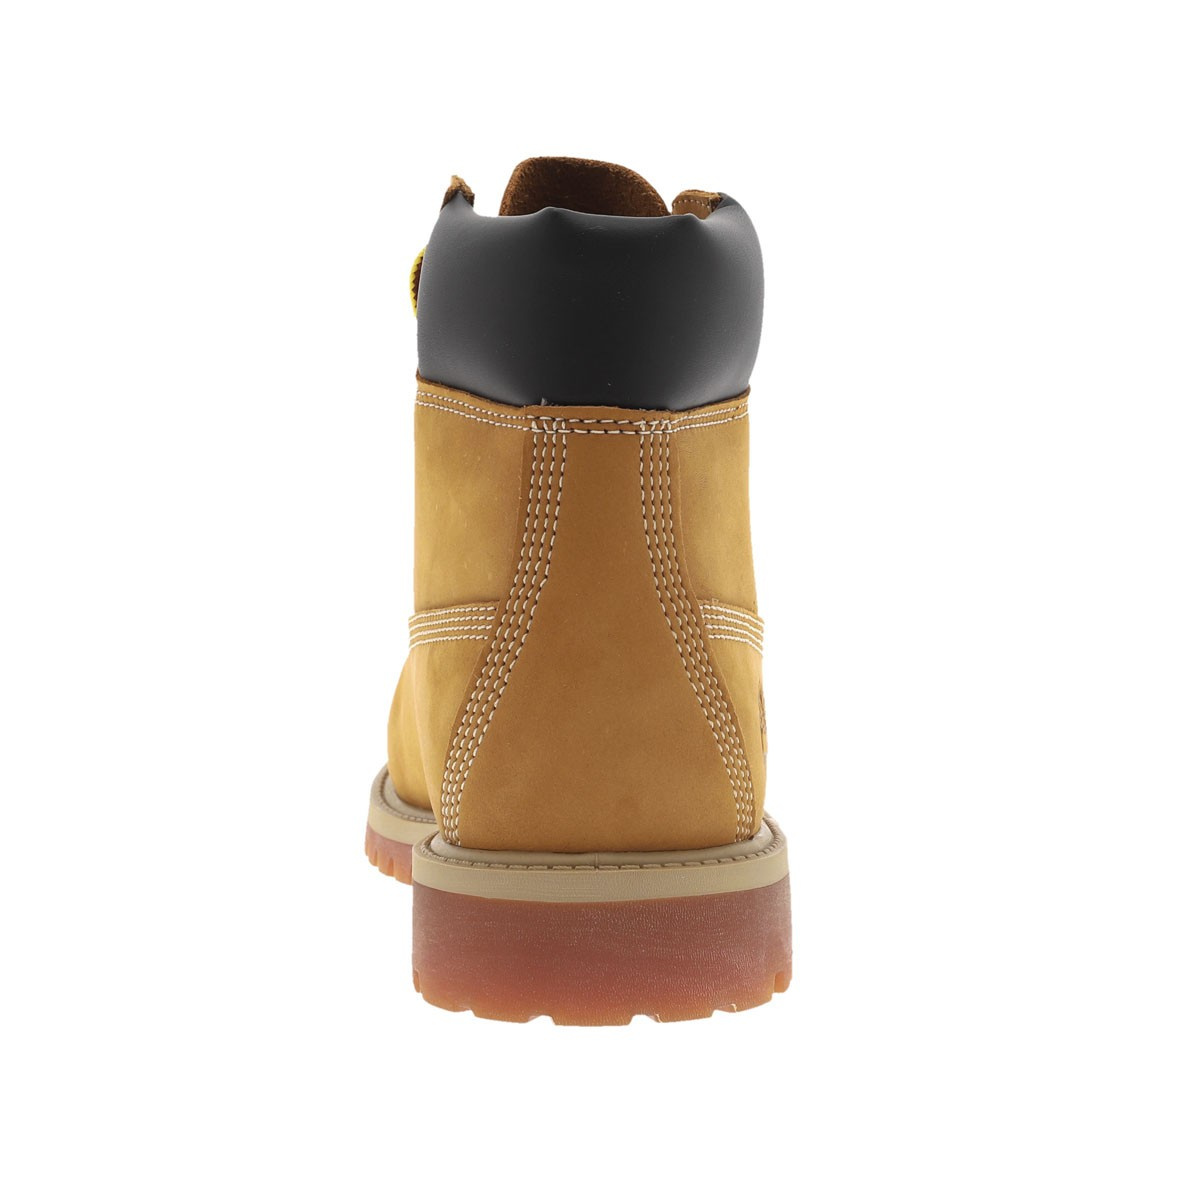 Ccv Timberland 6in Mode Premium Chaussures Fille Marron UaXg6Oqc